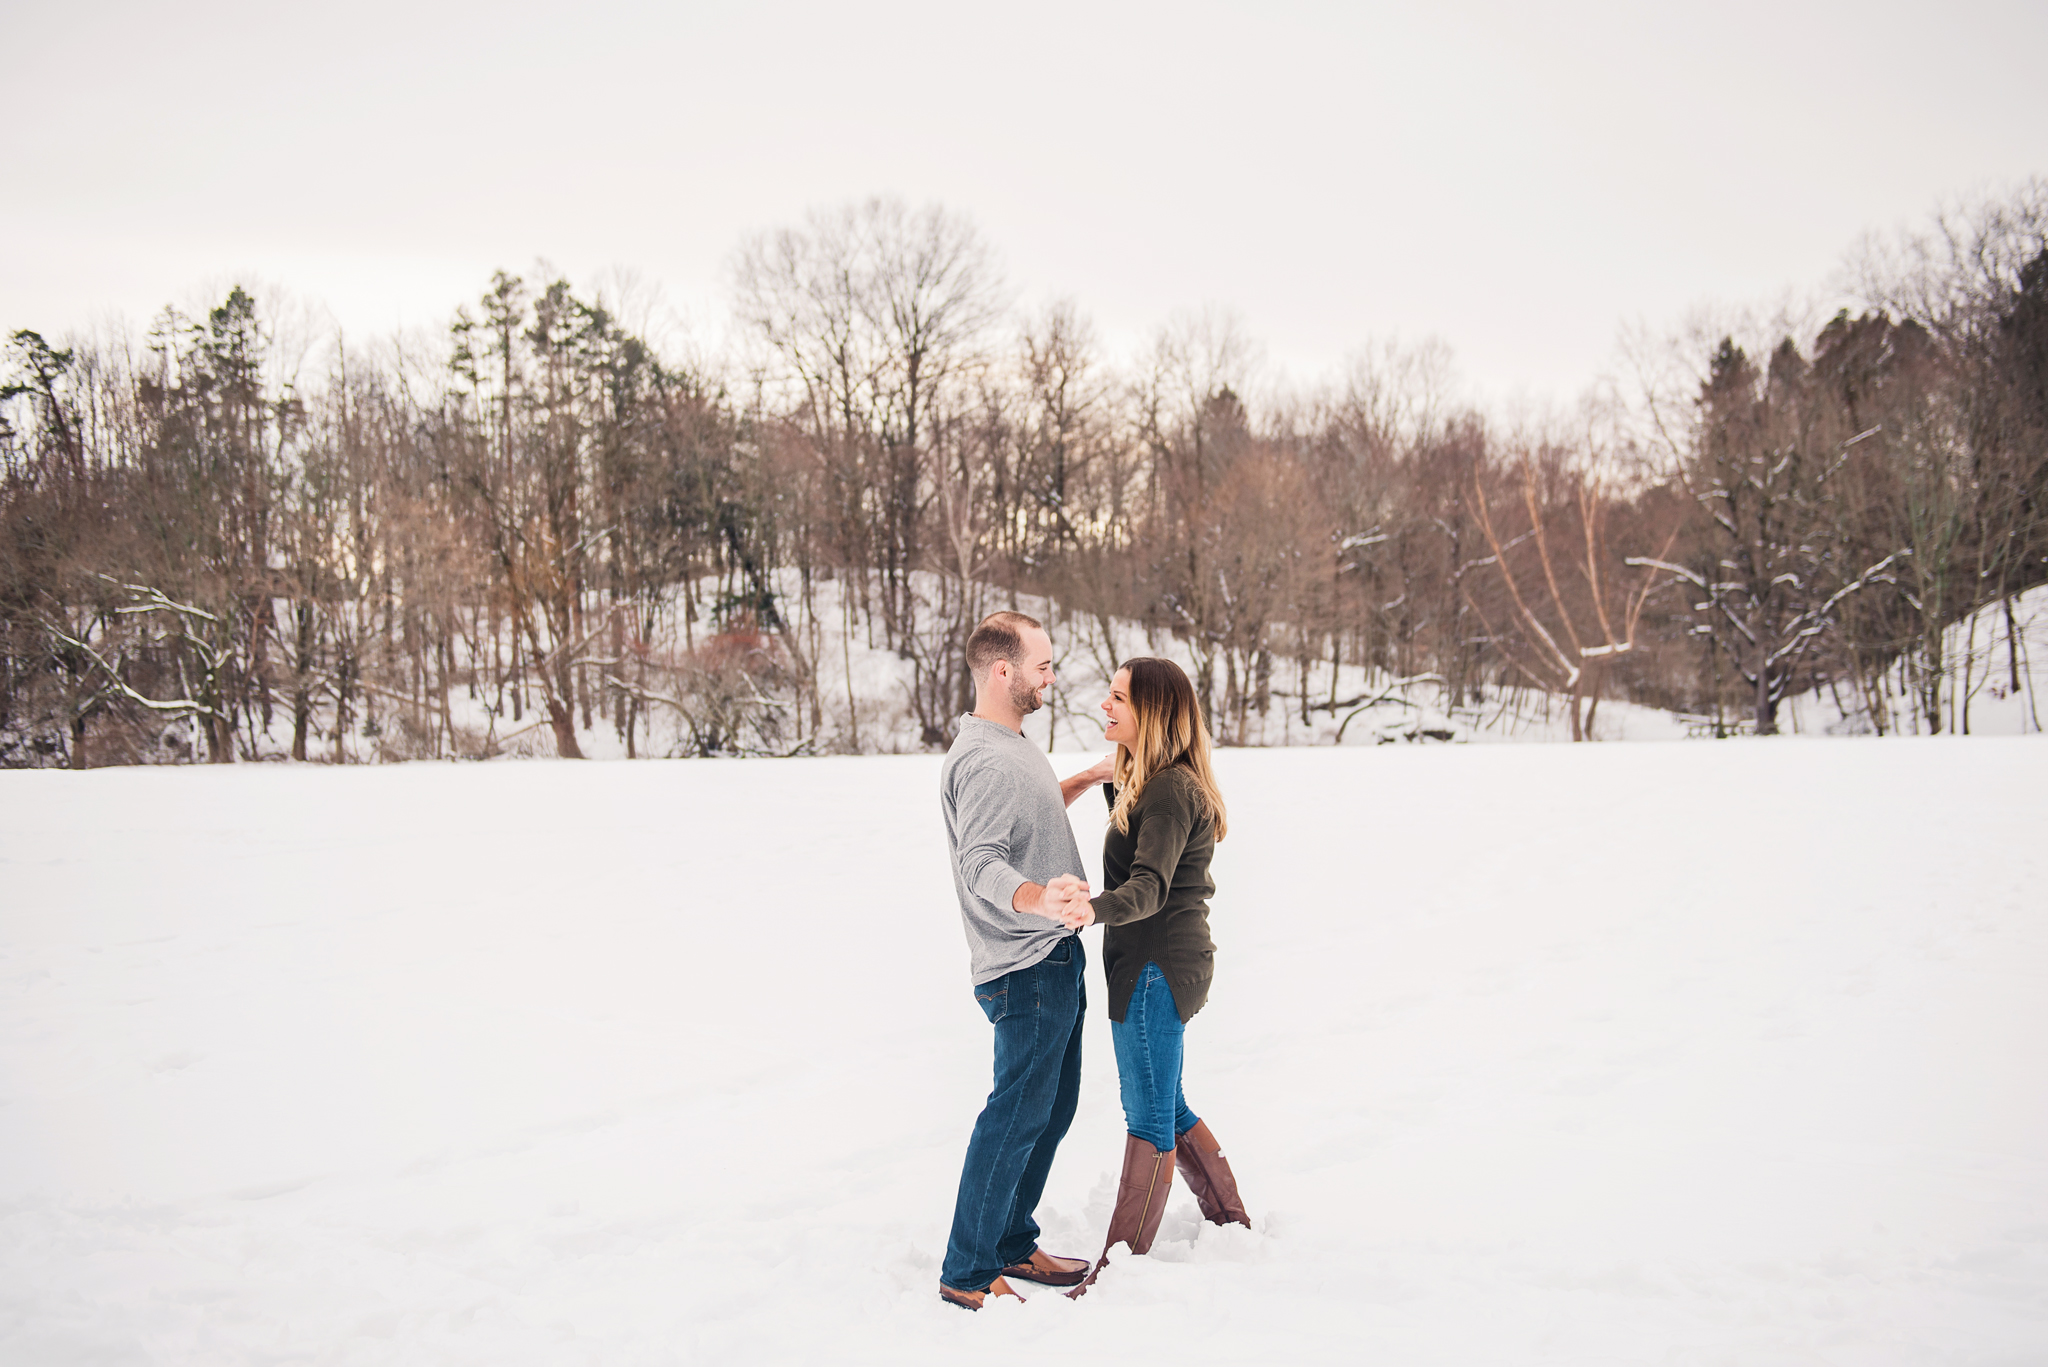 Webster_Park_Engagement_Session_Rochester_NY_photographer_DSC_6427.jpg